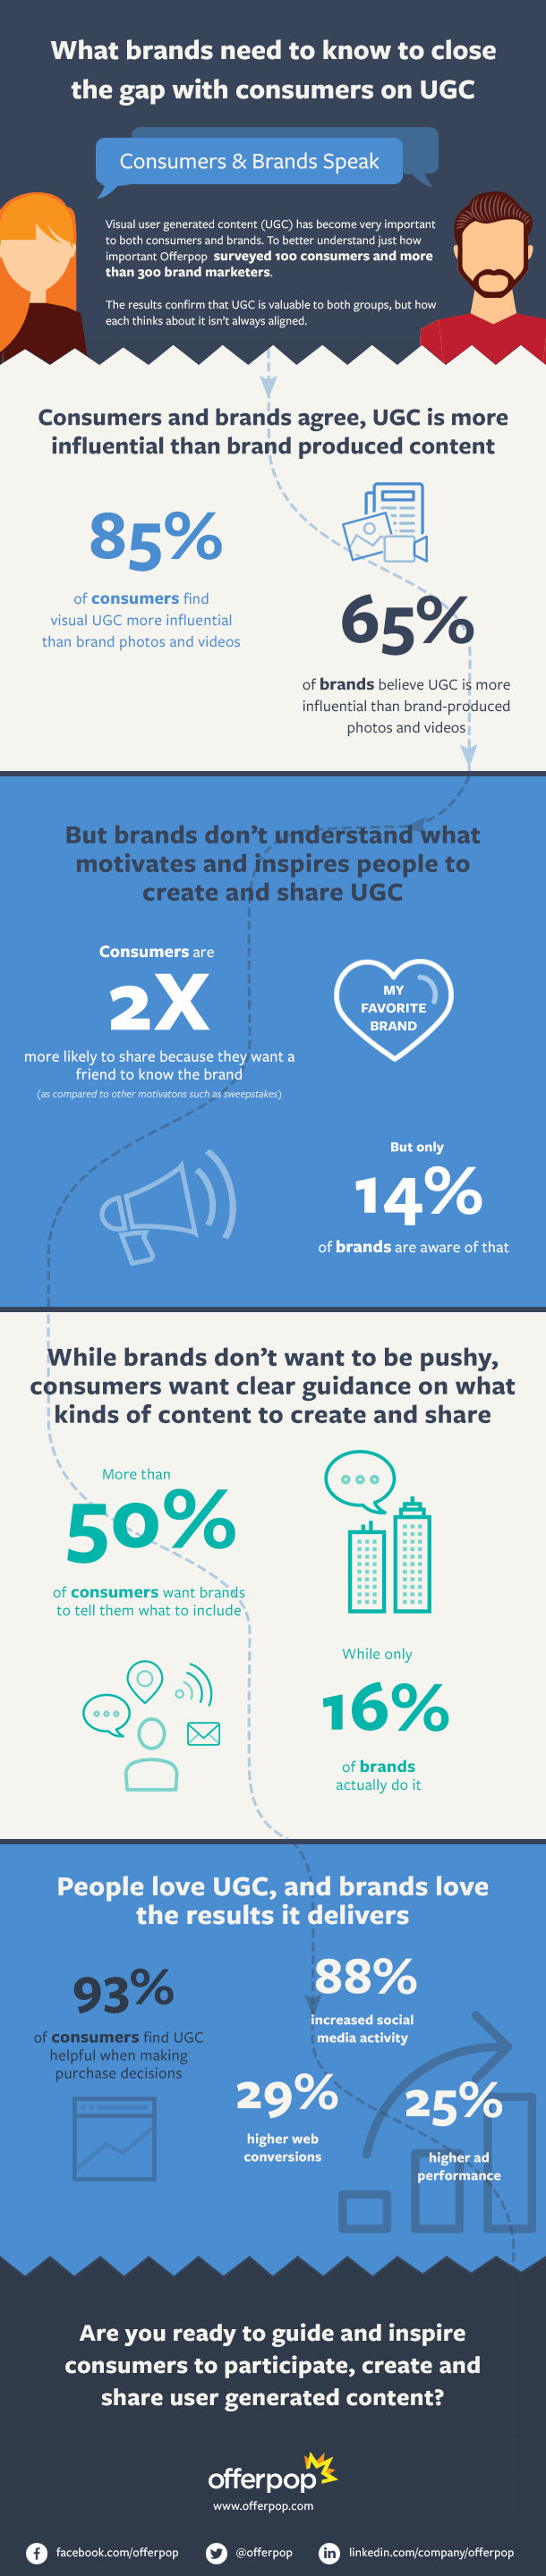 How to Connect with Consumers via User-Generated Content [Infographic] | Social Media Today